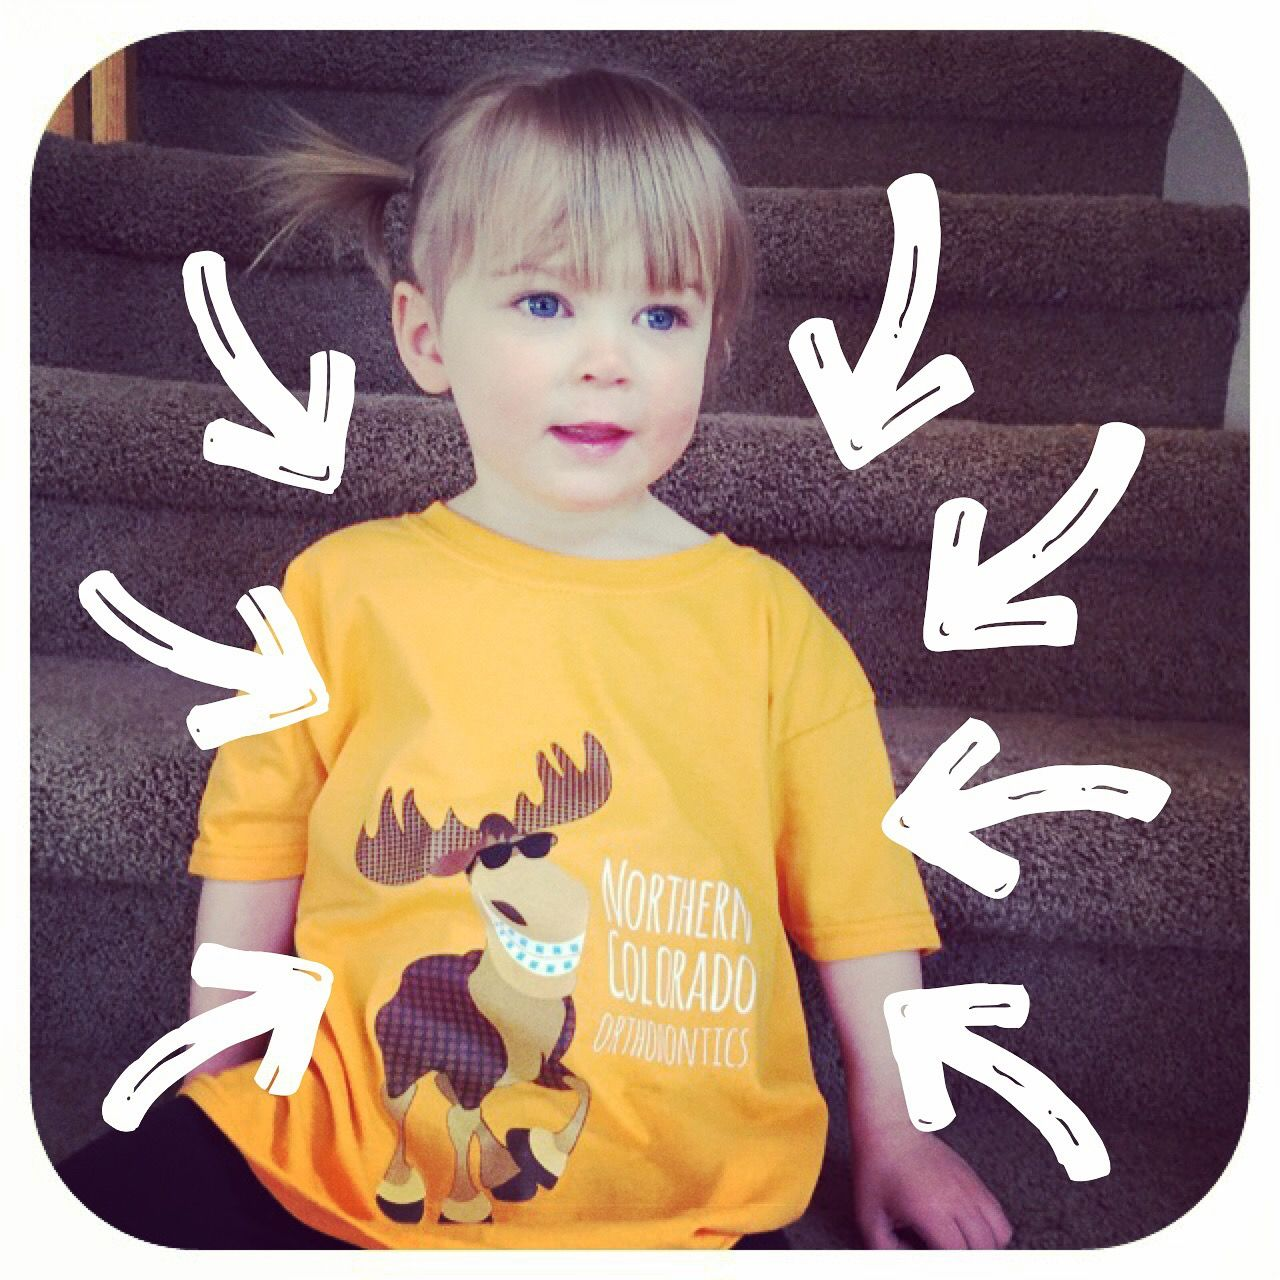 Our New T-Shirts Are Super Awesome!| The Braces Blog | Northern Colorado Orthodontics Moose with braces and 970 shirts are here!